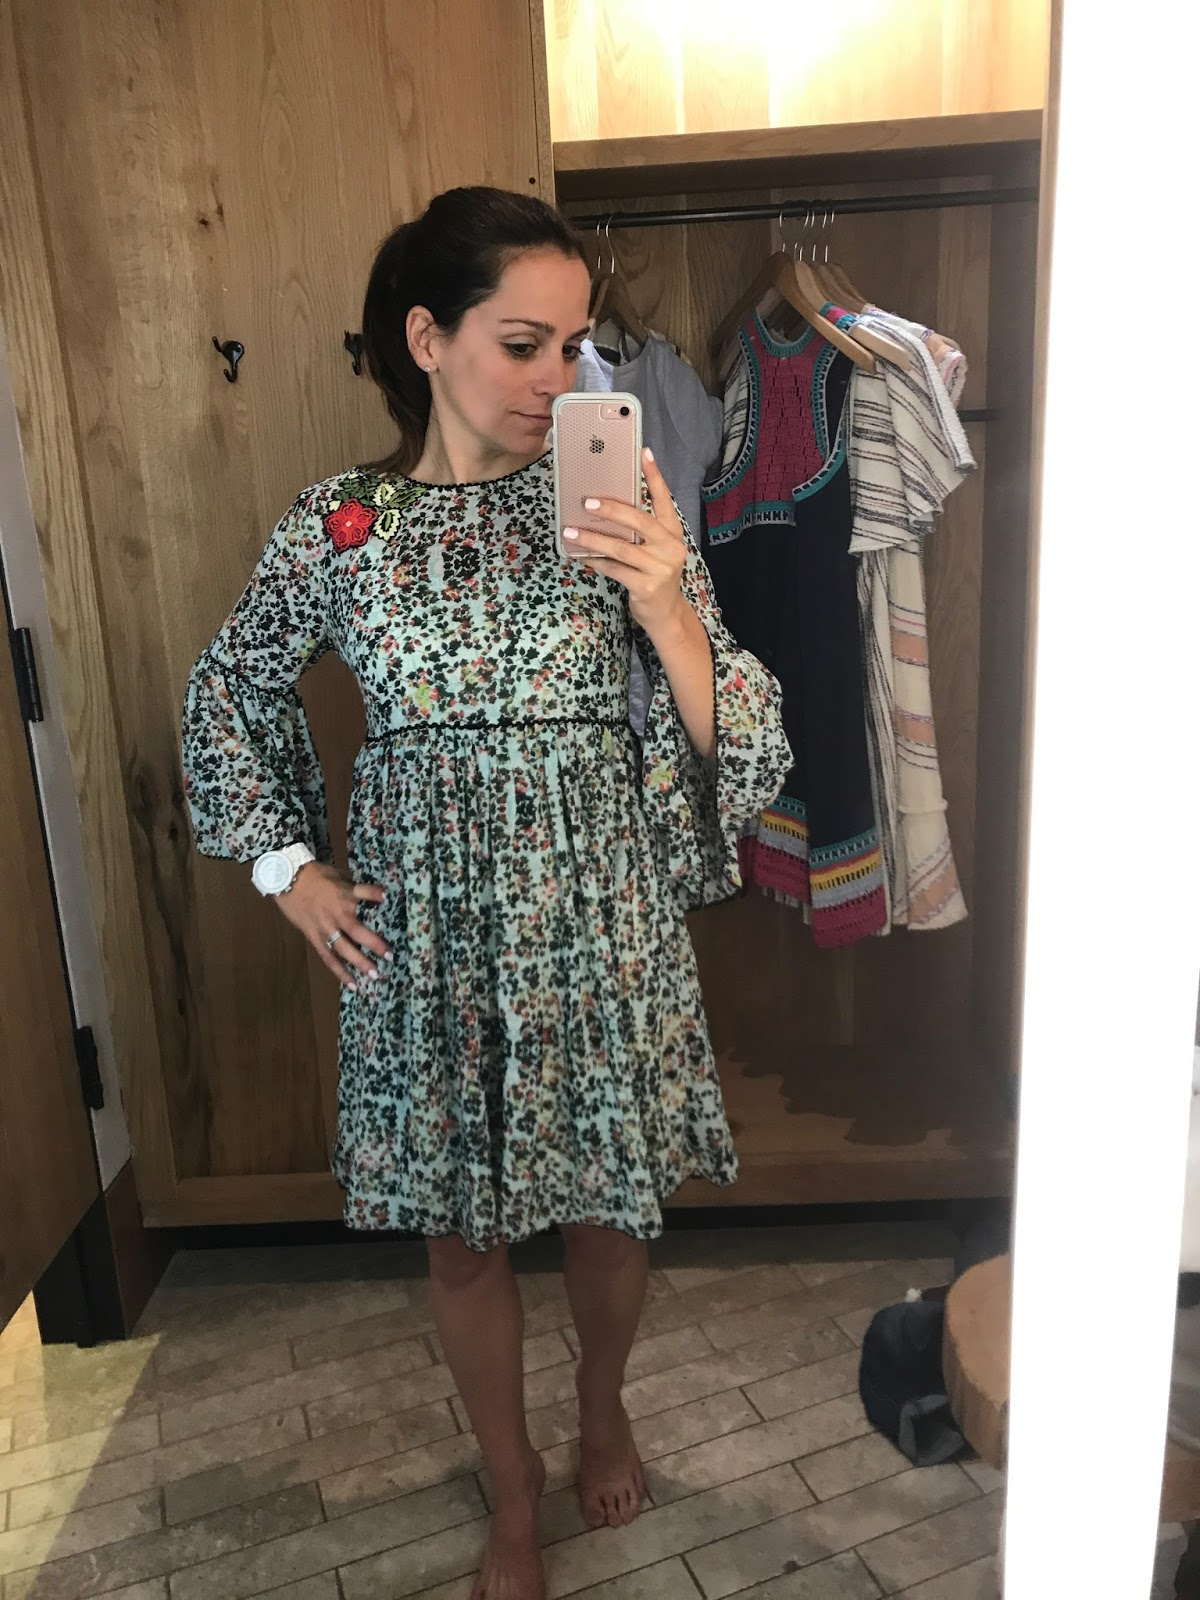 64793c7b244 Libra Embroidered Tunic Dress - This was a winner. I'd see a few other  bloggers that I follow post about it and I had to try it on. It's so  flattering.